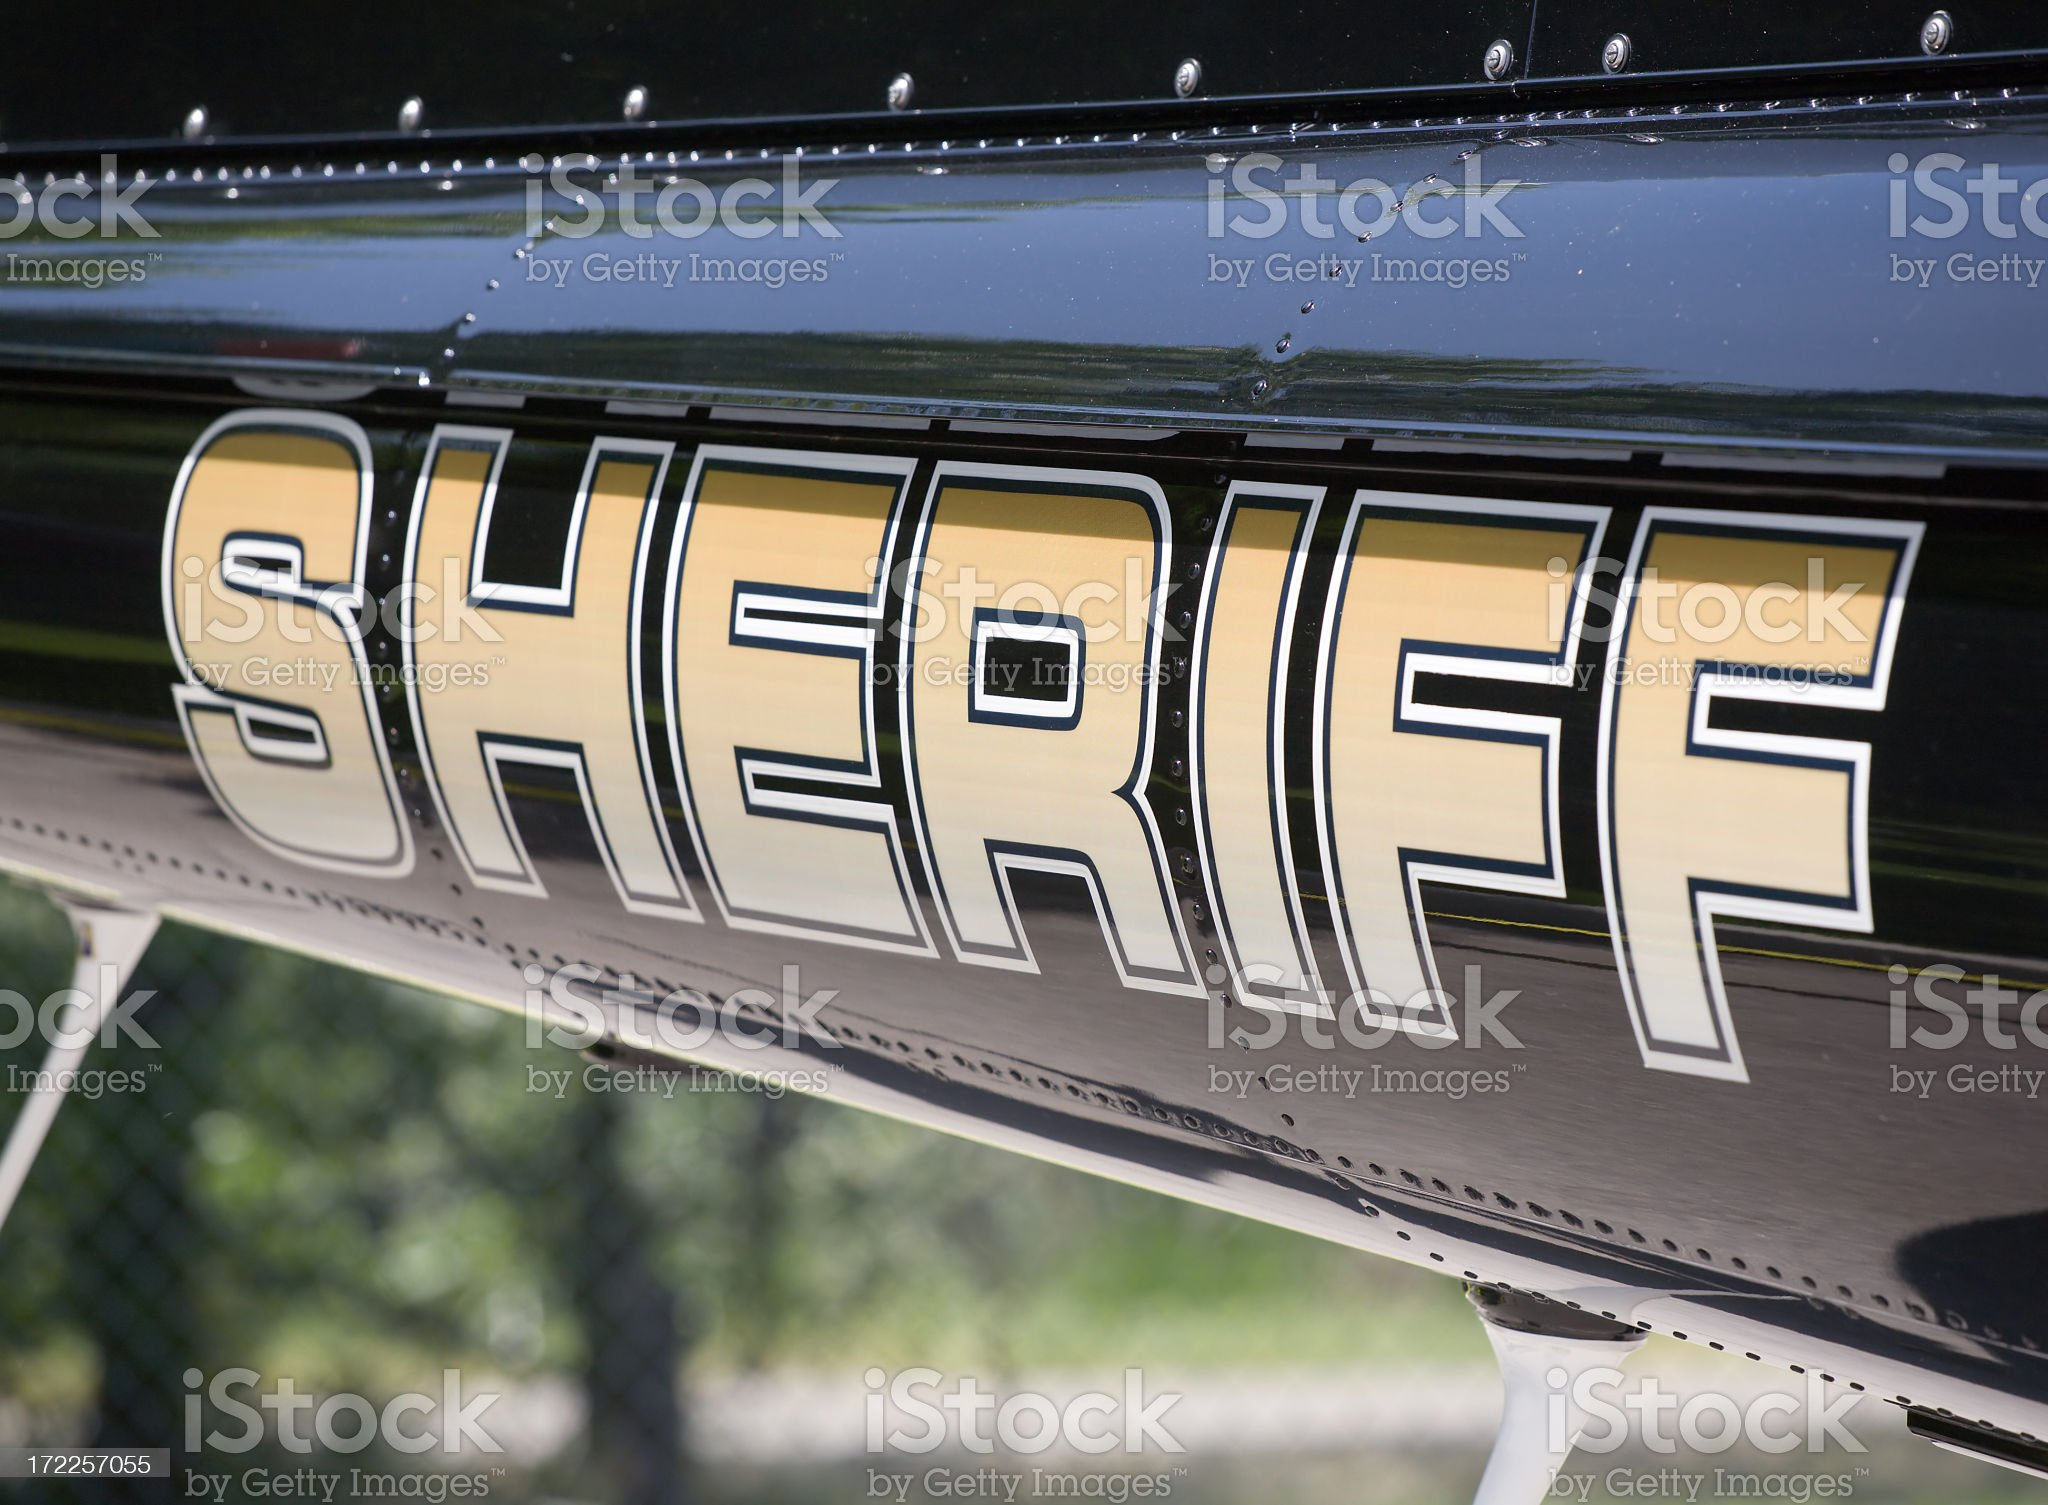 Sheriff Lettering on a Helicopter royalty-free stock photo